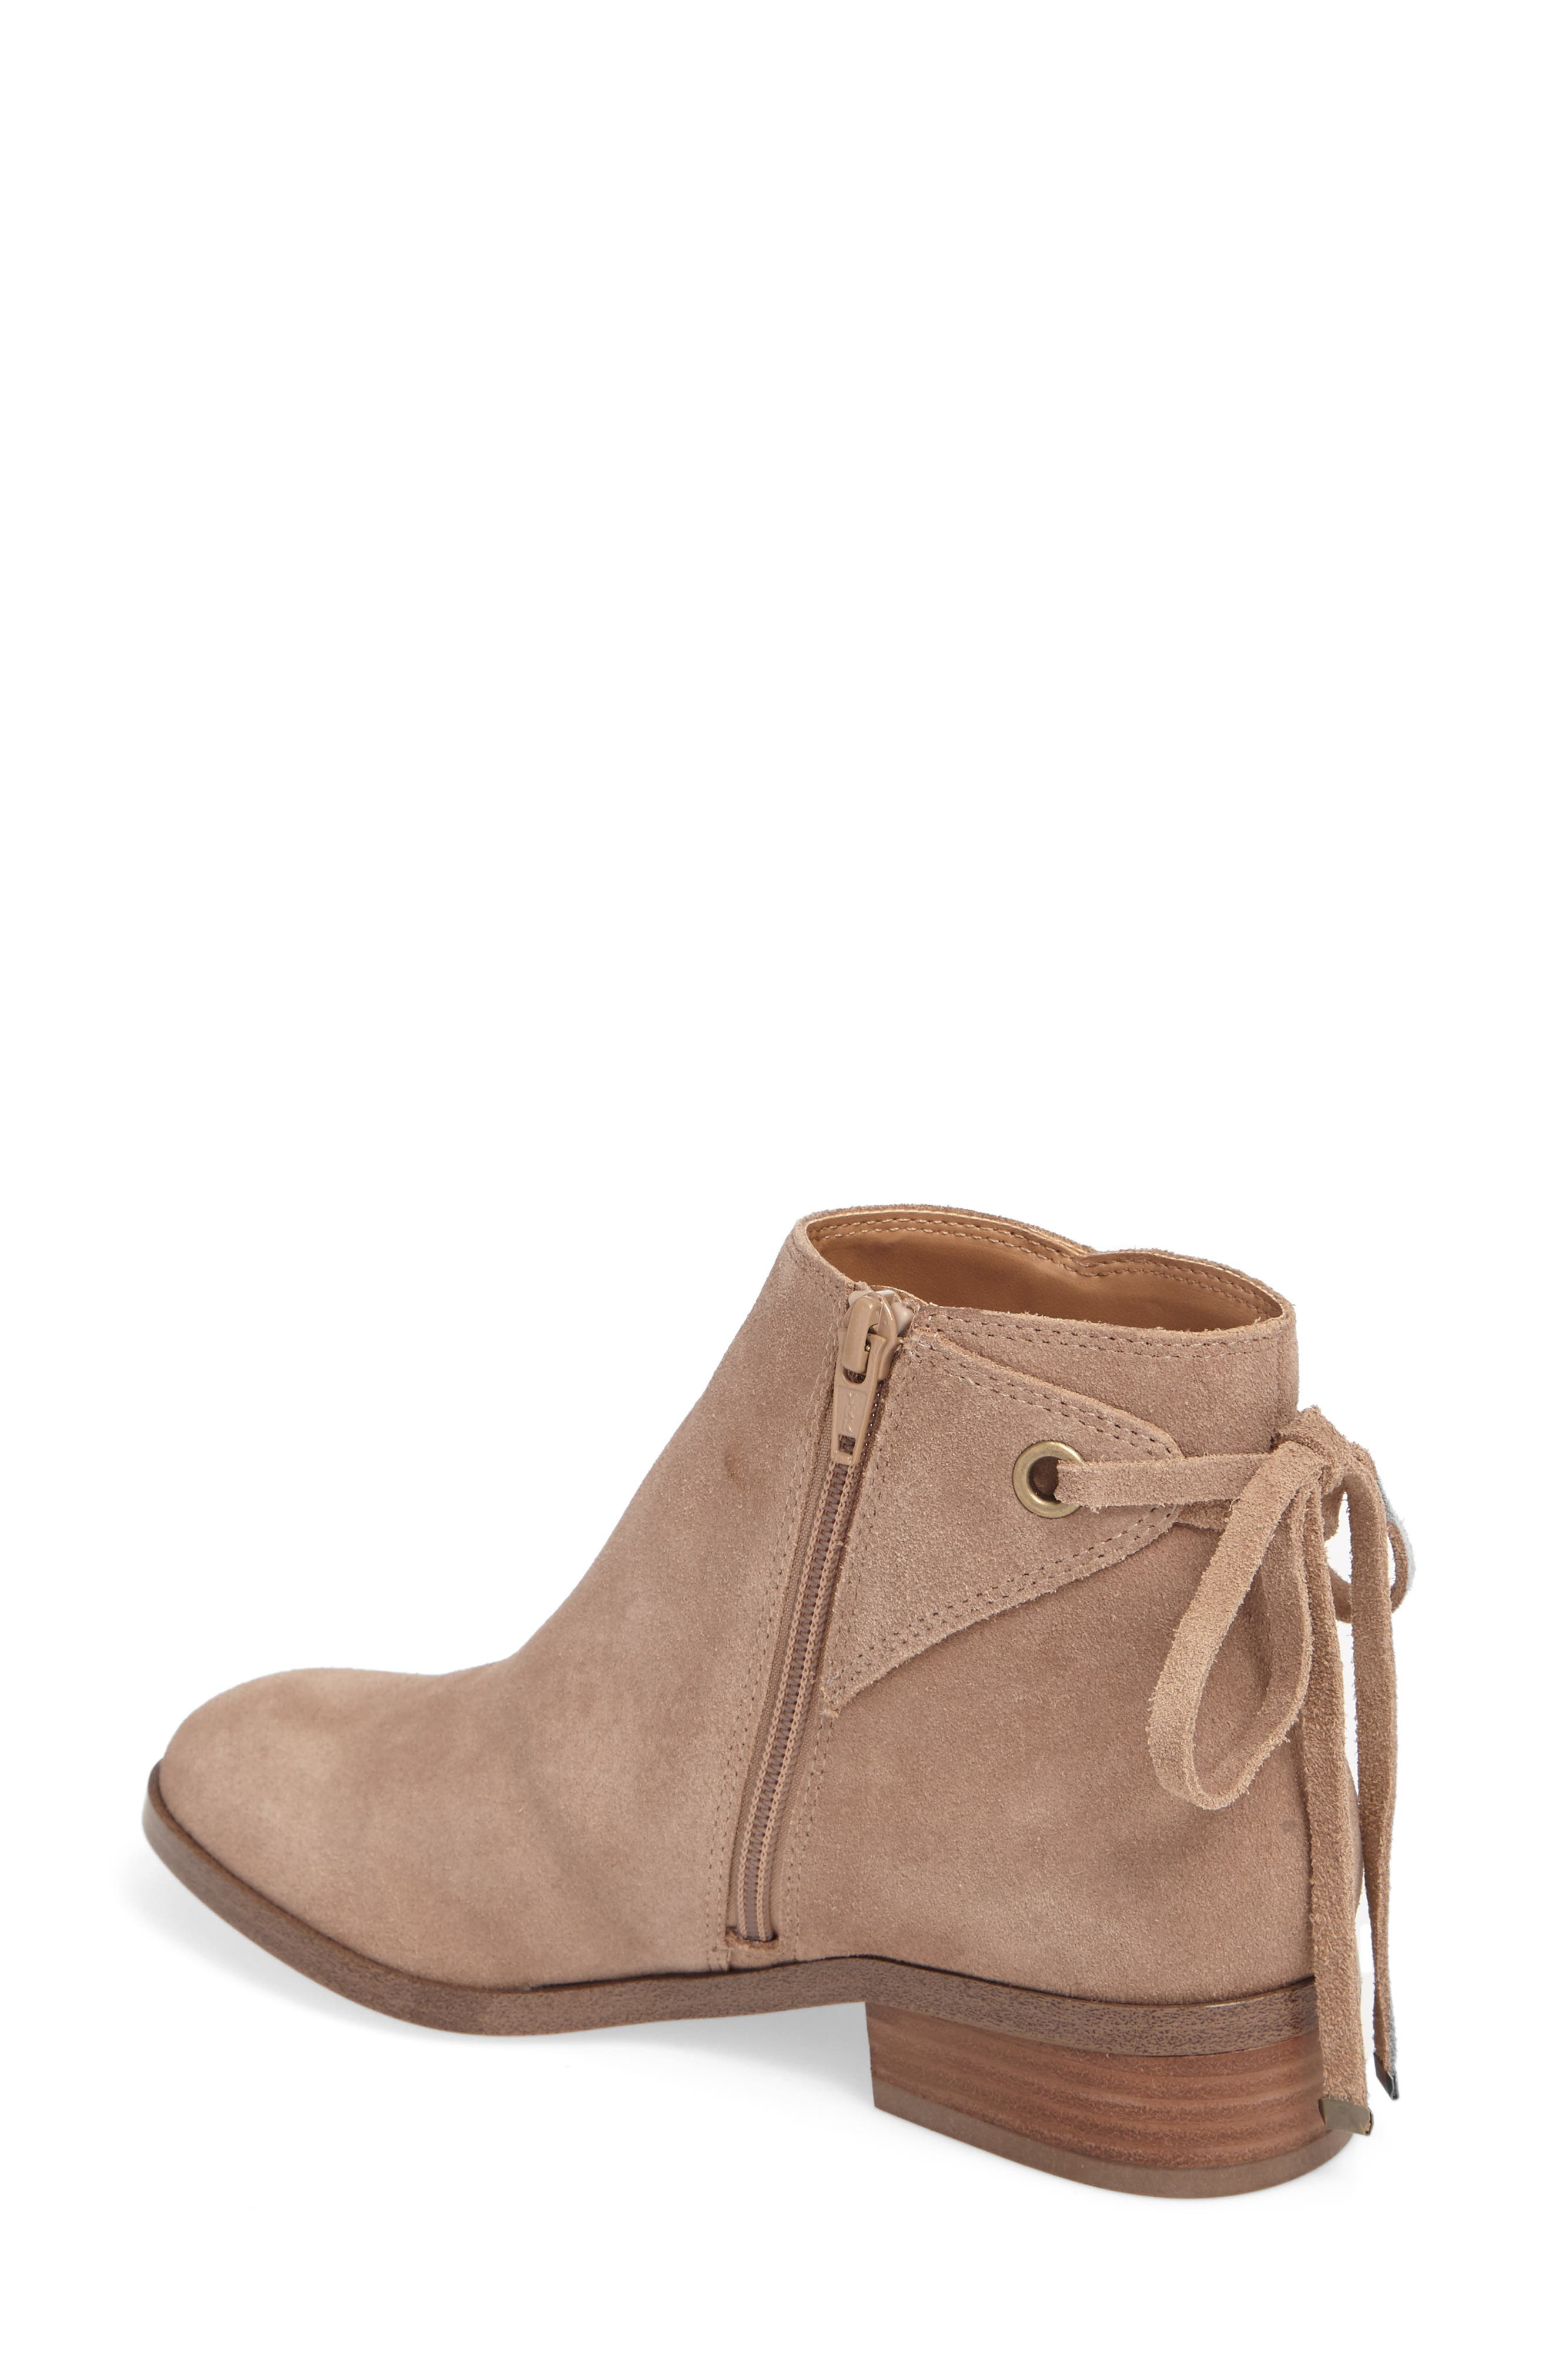 Lachlan Tie Back Bootie,                             Alternate thumbnail 2, color,                             Taupe